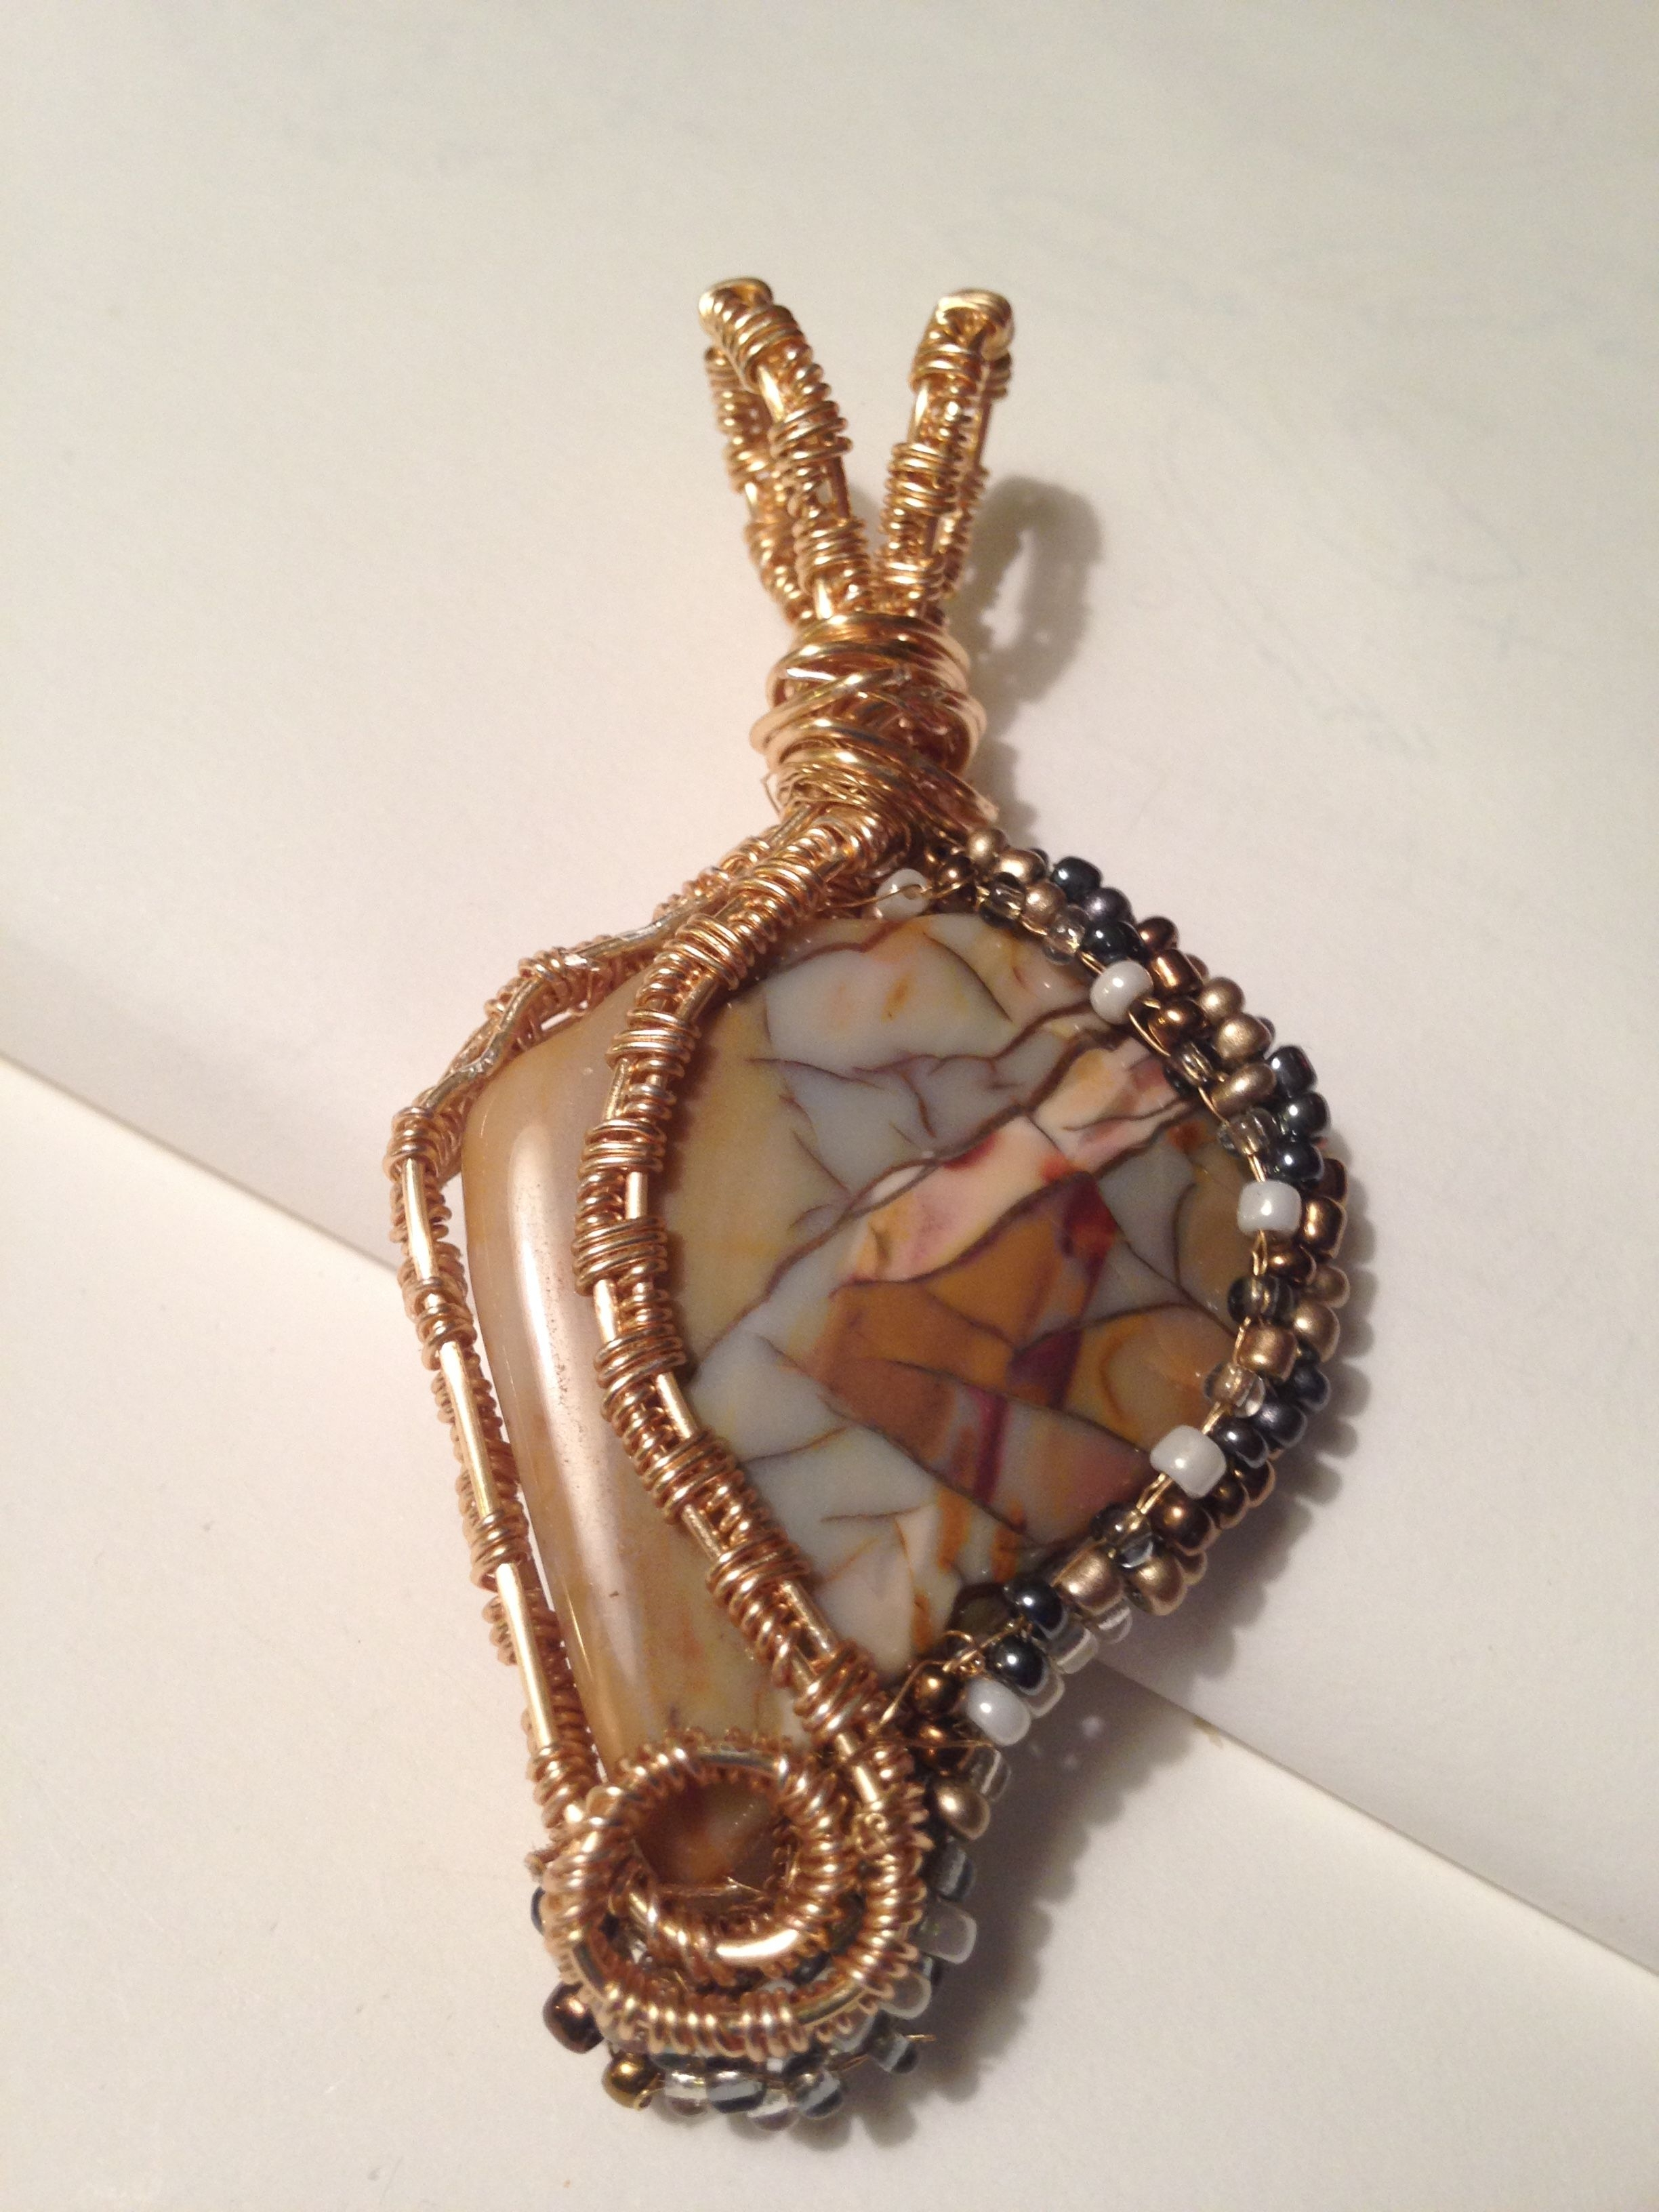 Breciated Oregon Jasper Wrapped In Seed Beads And A Copper Wire Within Best And Newest Ponytail Wrapped In Copper Wire And Beads (View 3 of 15)